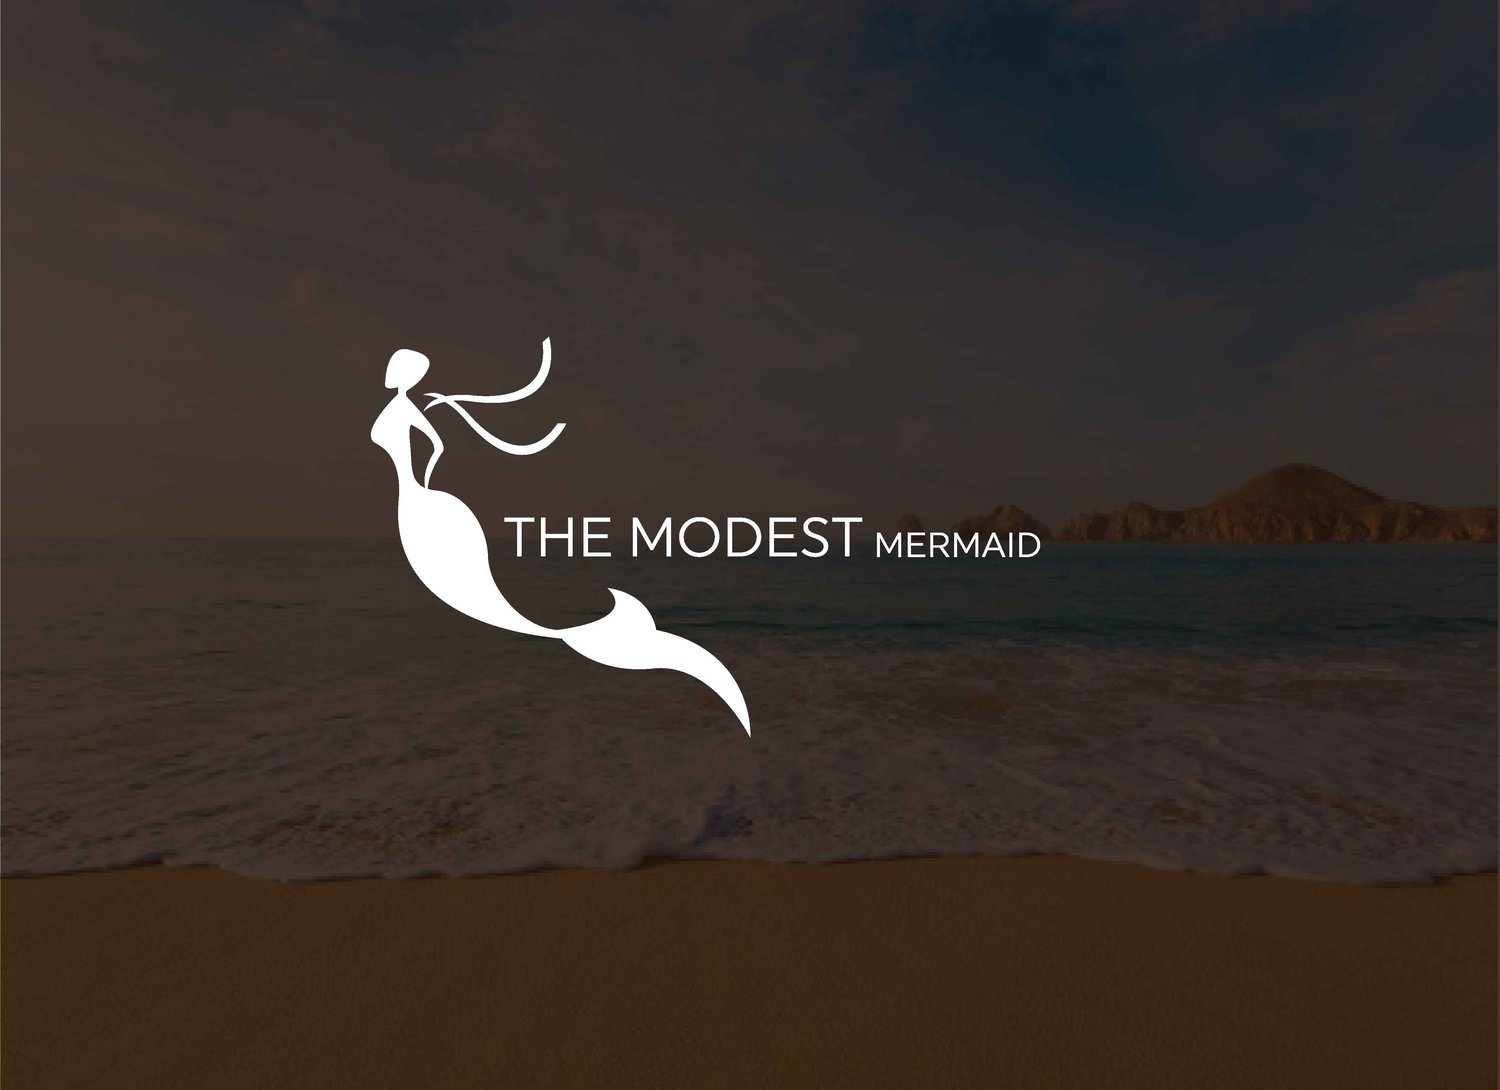 The Modest Mermaid